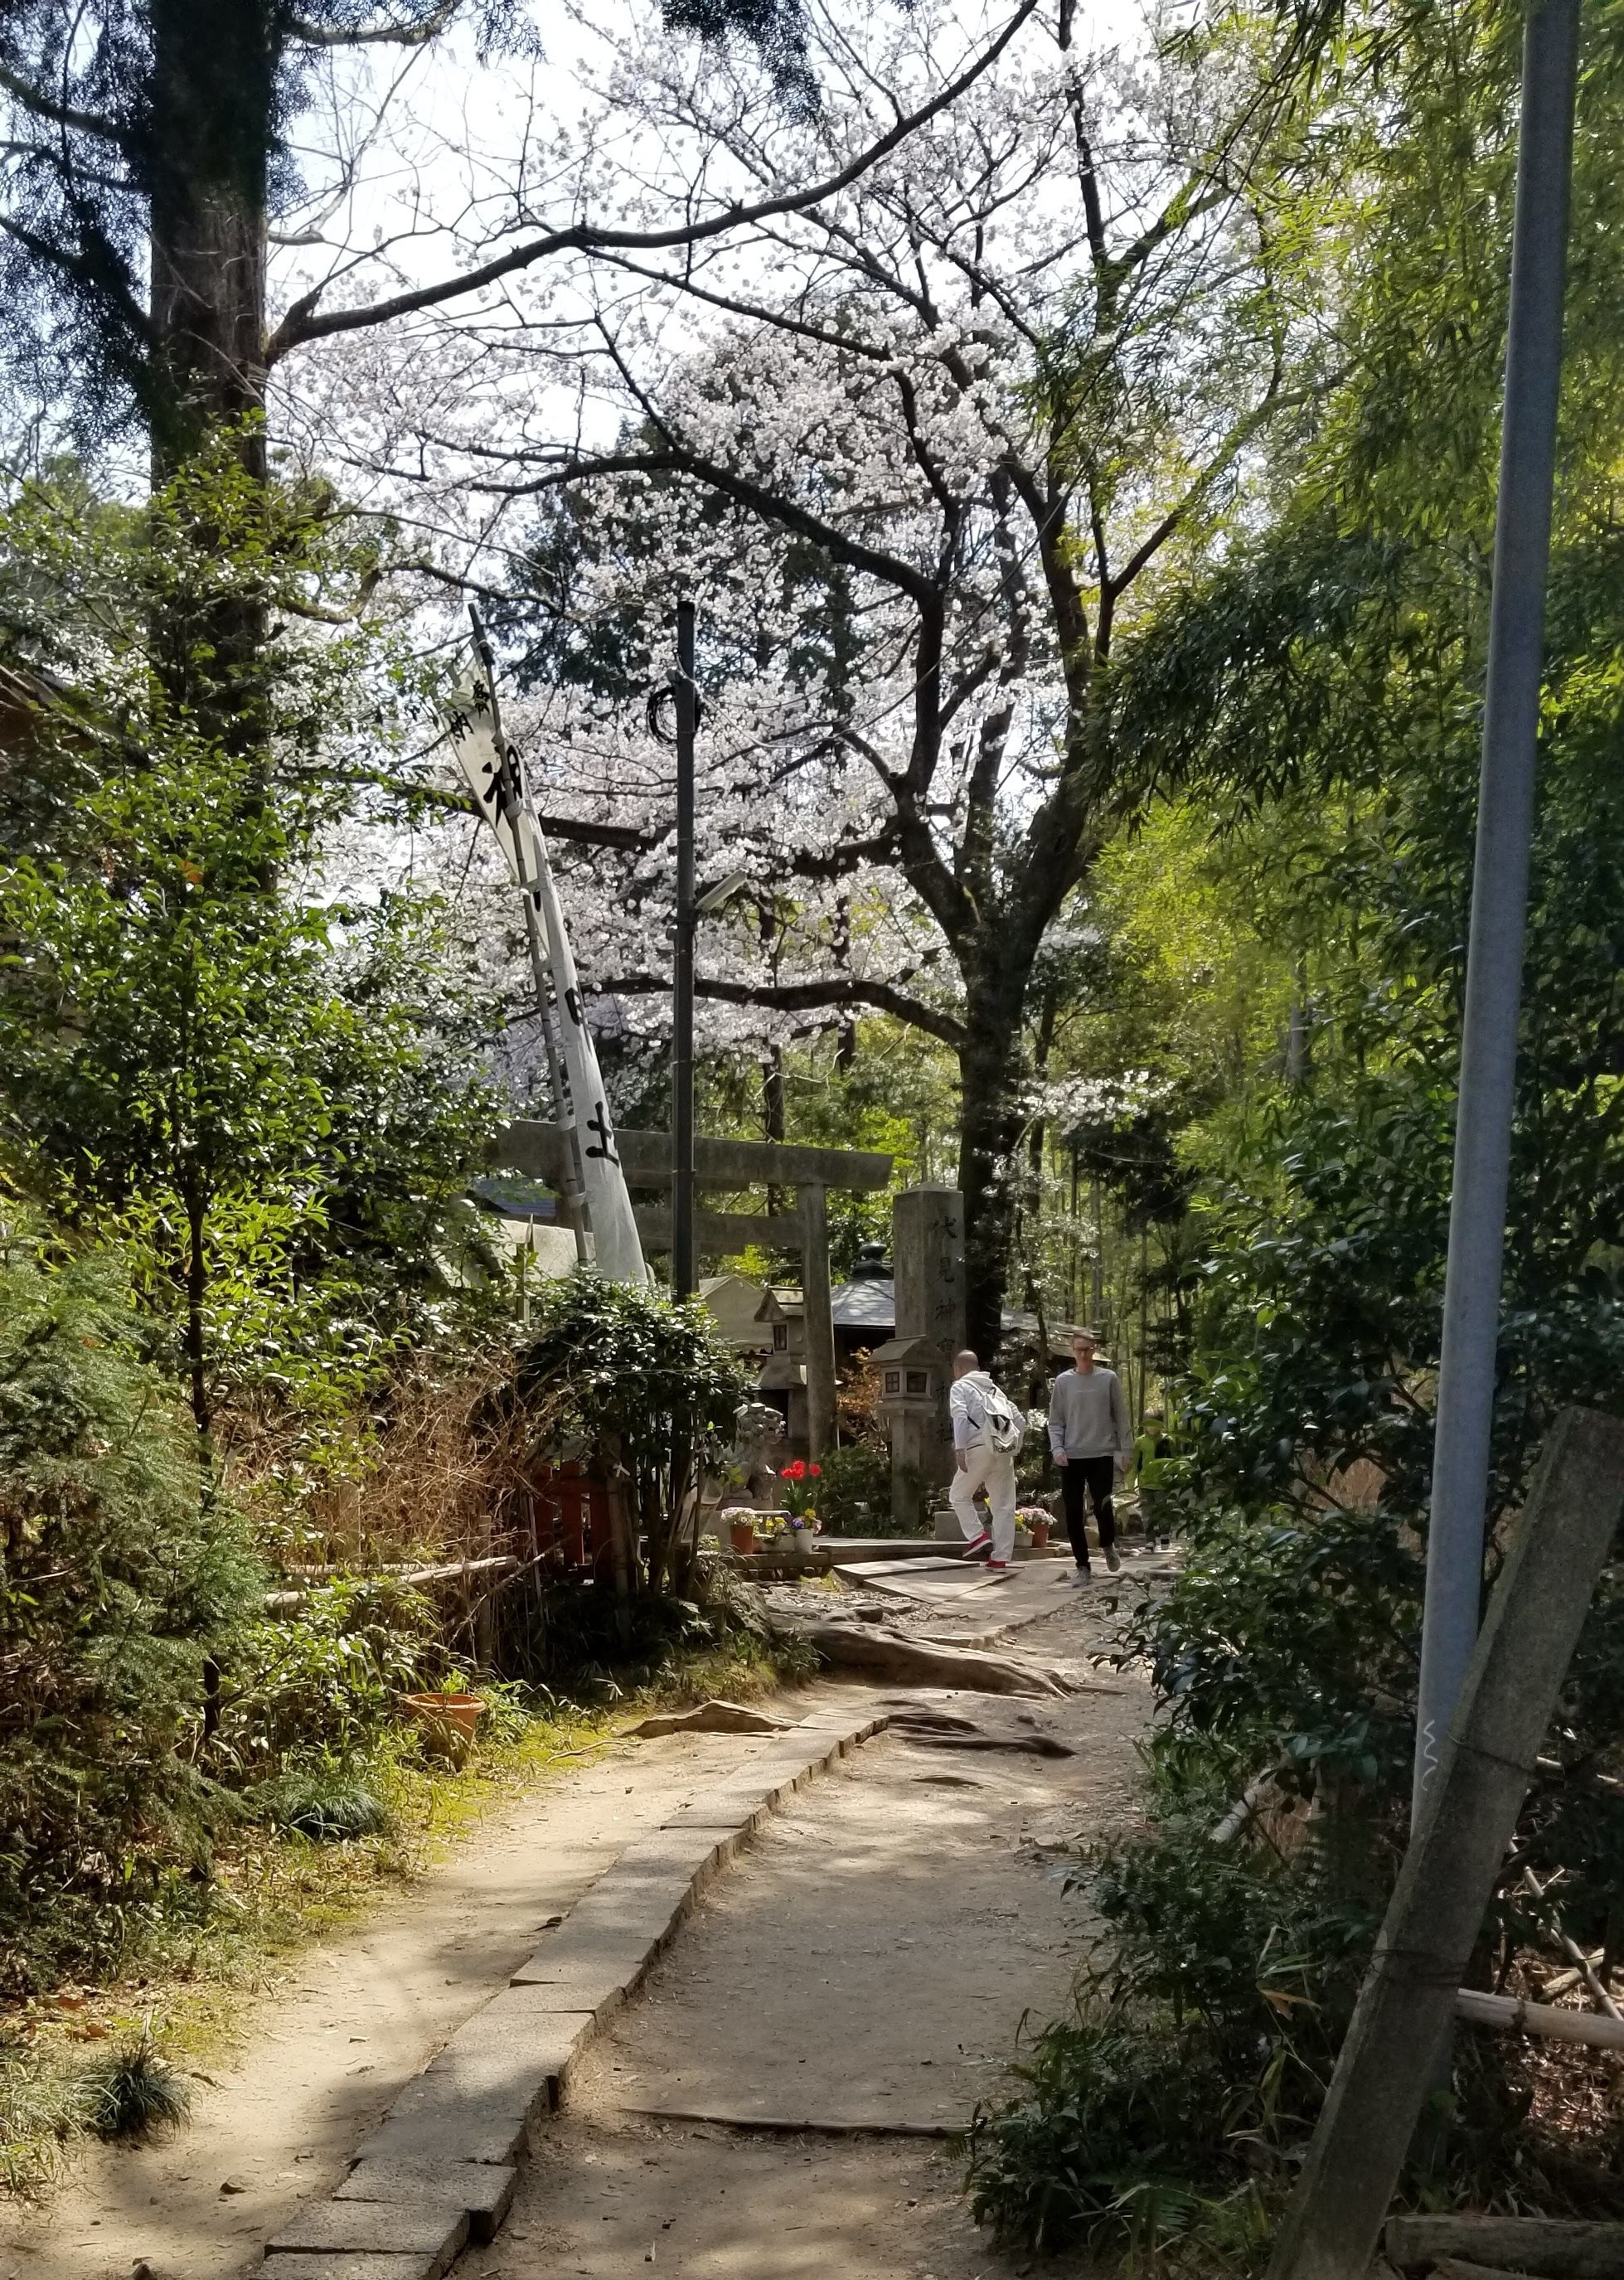 It was hard to tell whether nature sprouted up around the shrine, or whether the shrine was developed within these amazing natural surroundings. It felt as though they grew together.